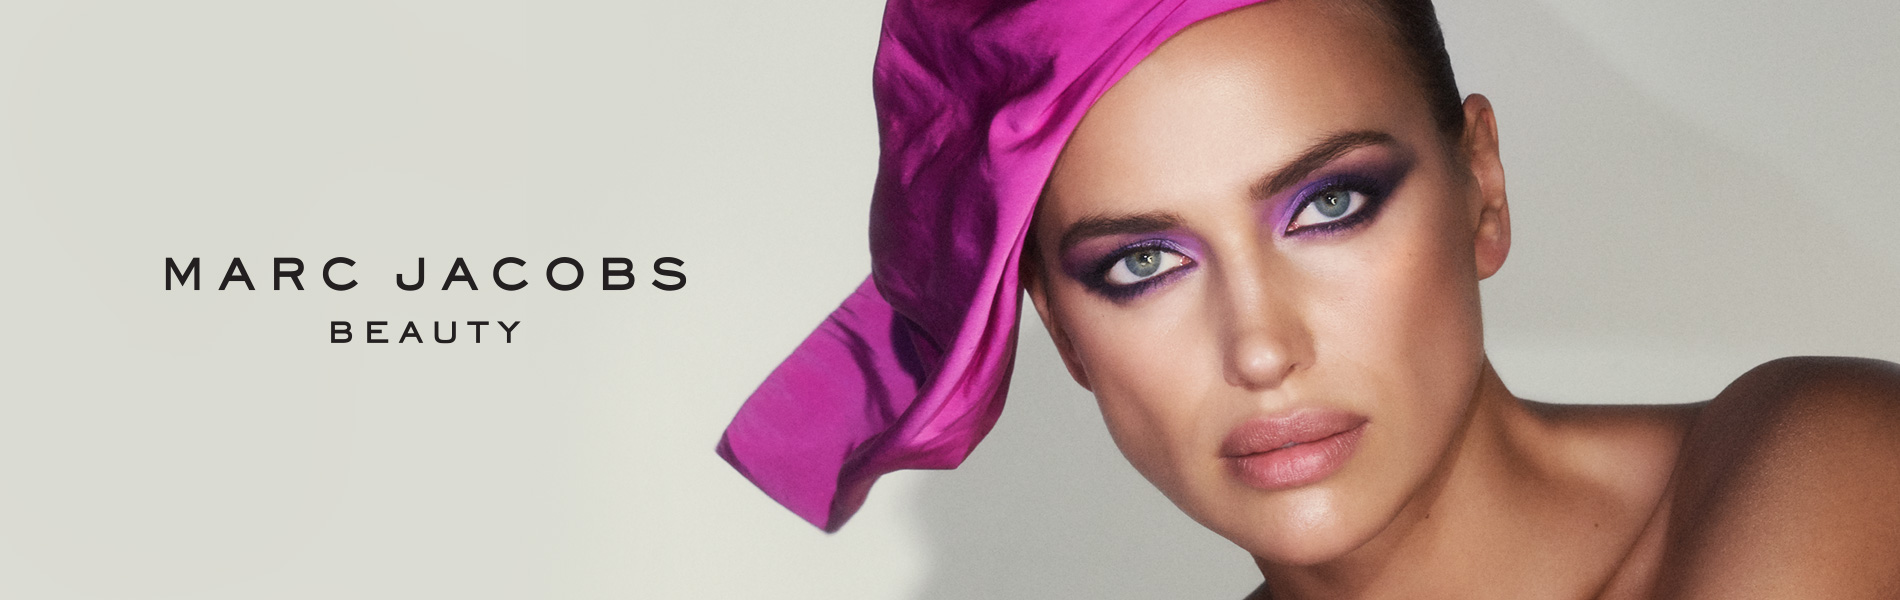 marc jacobs beauty to debut 2019 campaign ...